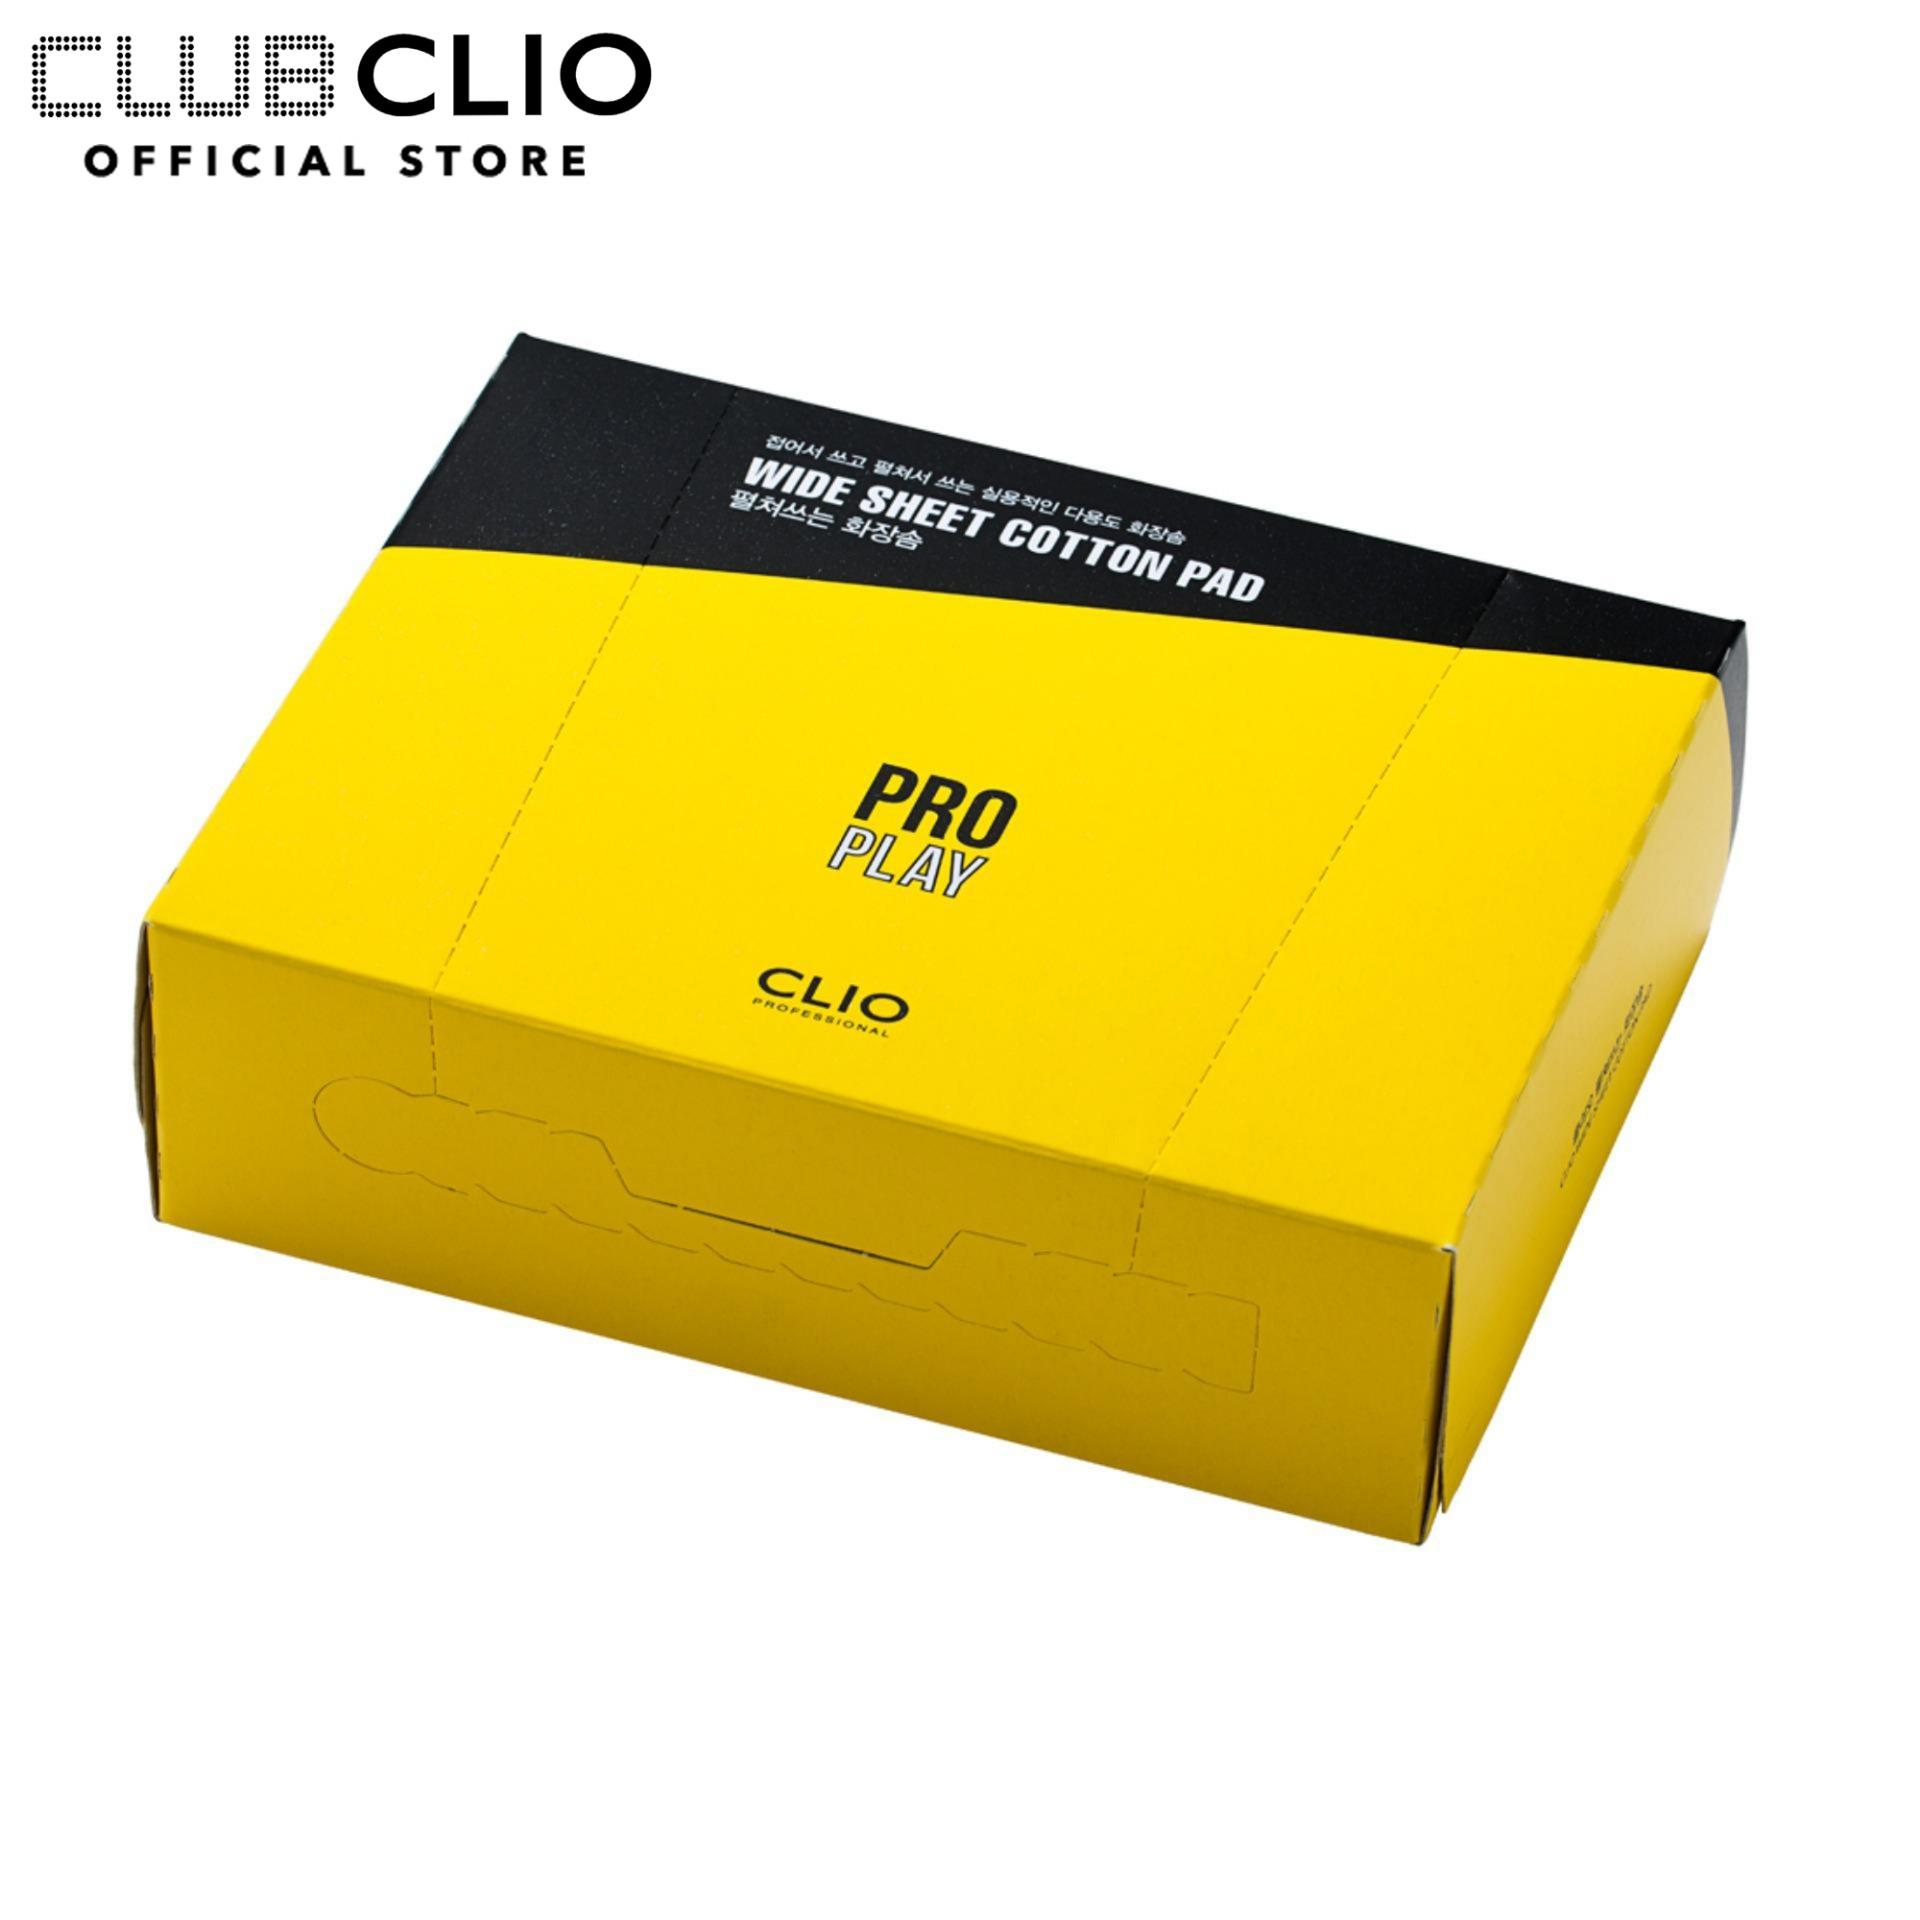 Clio Wide Sheet Cotton Pad By Club Clio Official Store